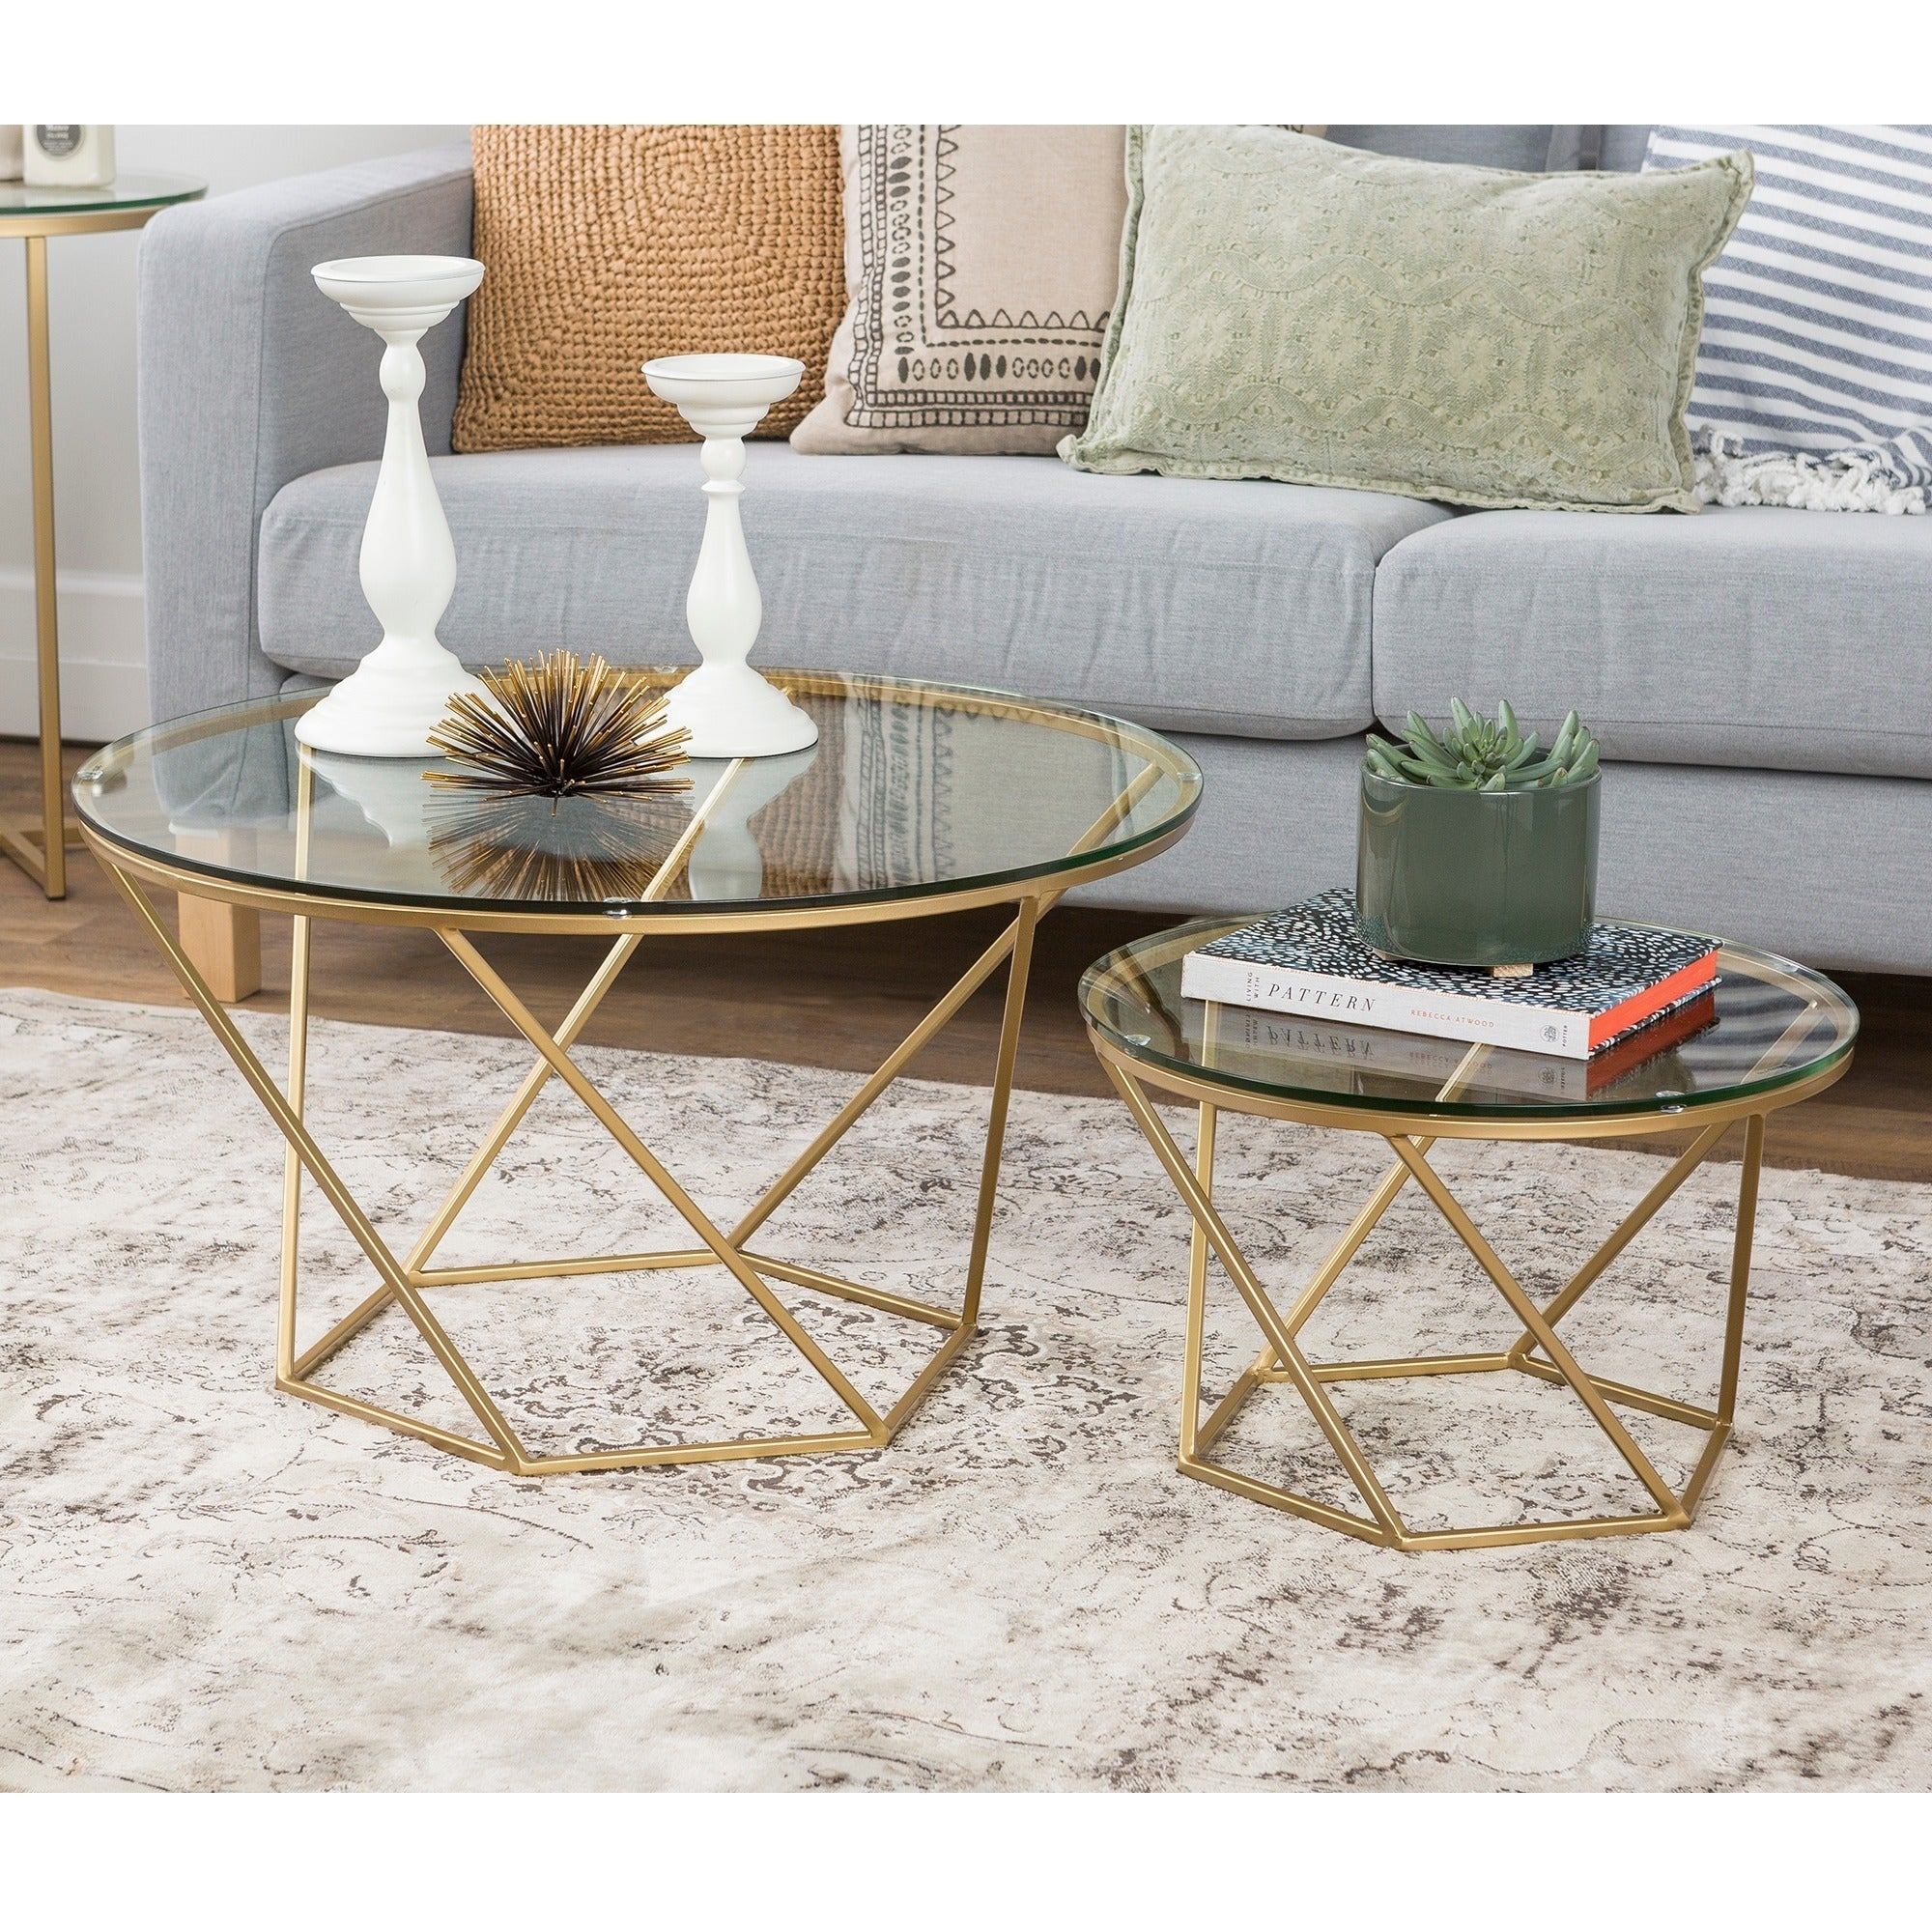 Silver Orchid Grant Geometric Glass Nesting Coffee Tables e505d518 5dcc 4d82 a37c 92d672a1f8d5 Top Result 50 Best Of Gold and Glass Coffee Table Image 2017 Ksh4